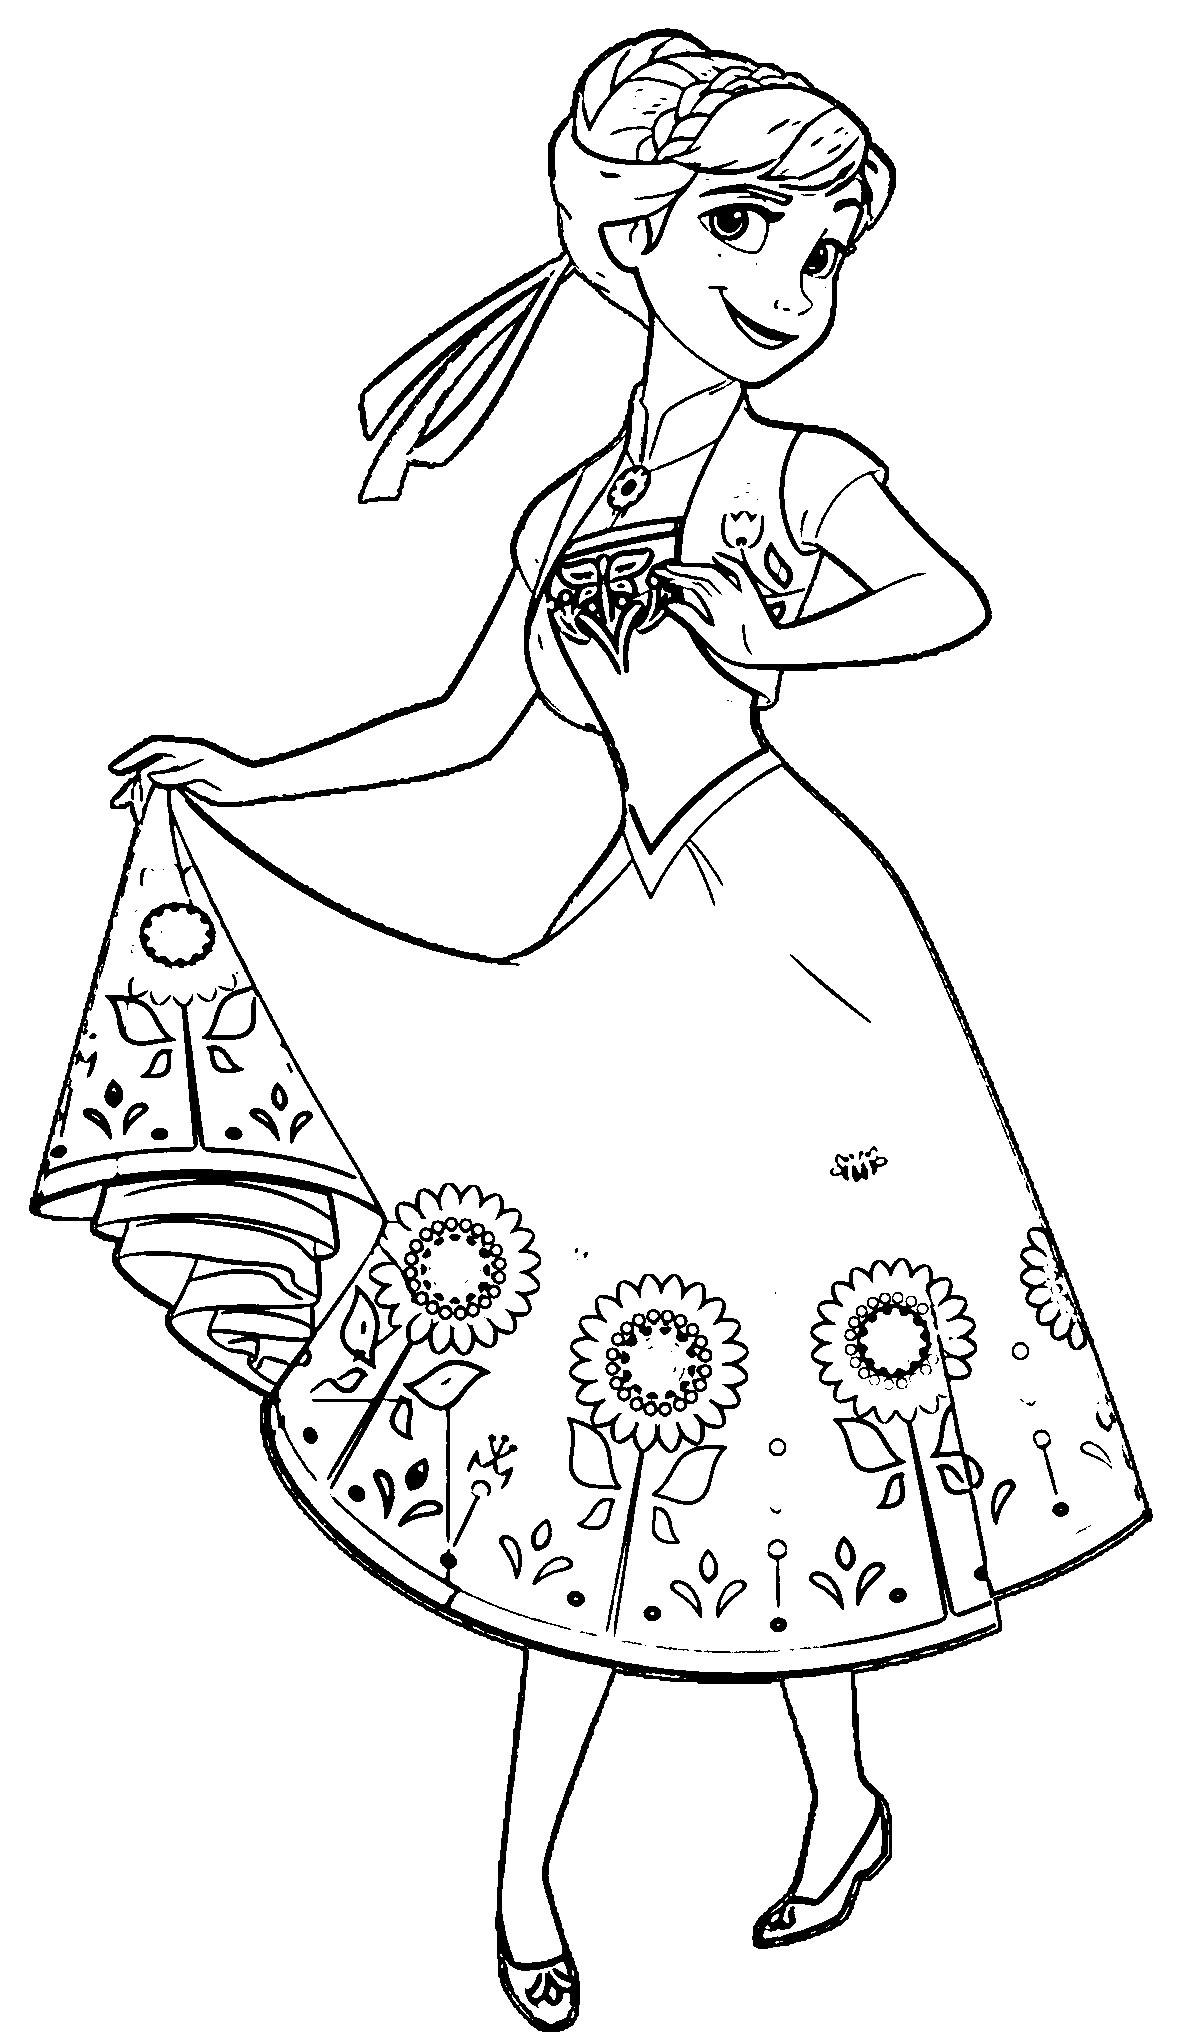 Best ideas about Disney Frozen Anna Free Printable Coloring Sheets . Save or Pin Elegant Elsa and Anna Coloring Pages – advance thun Now.